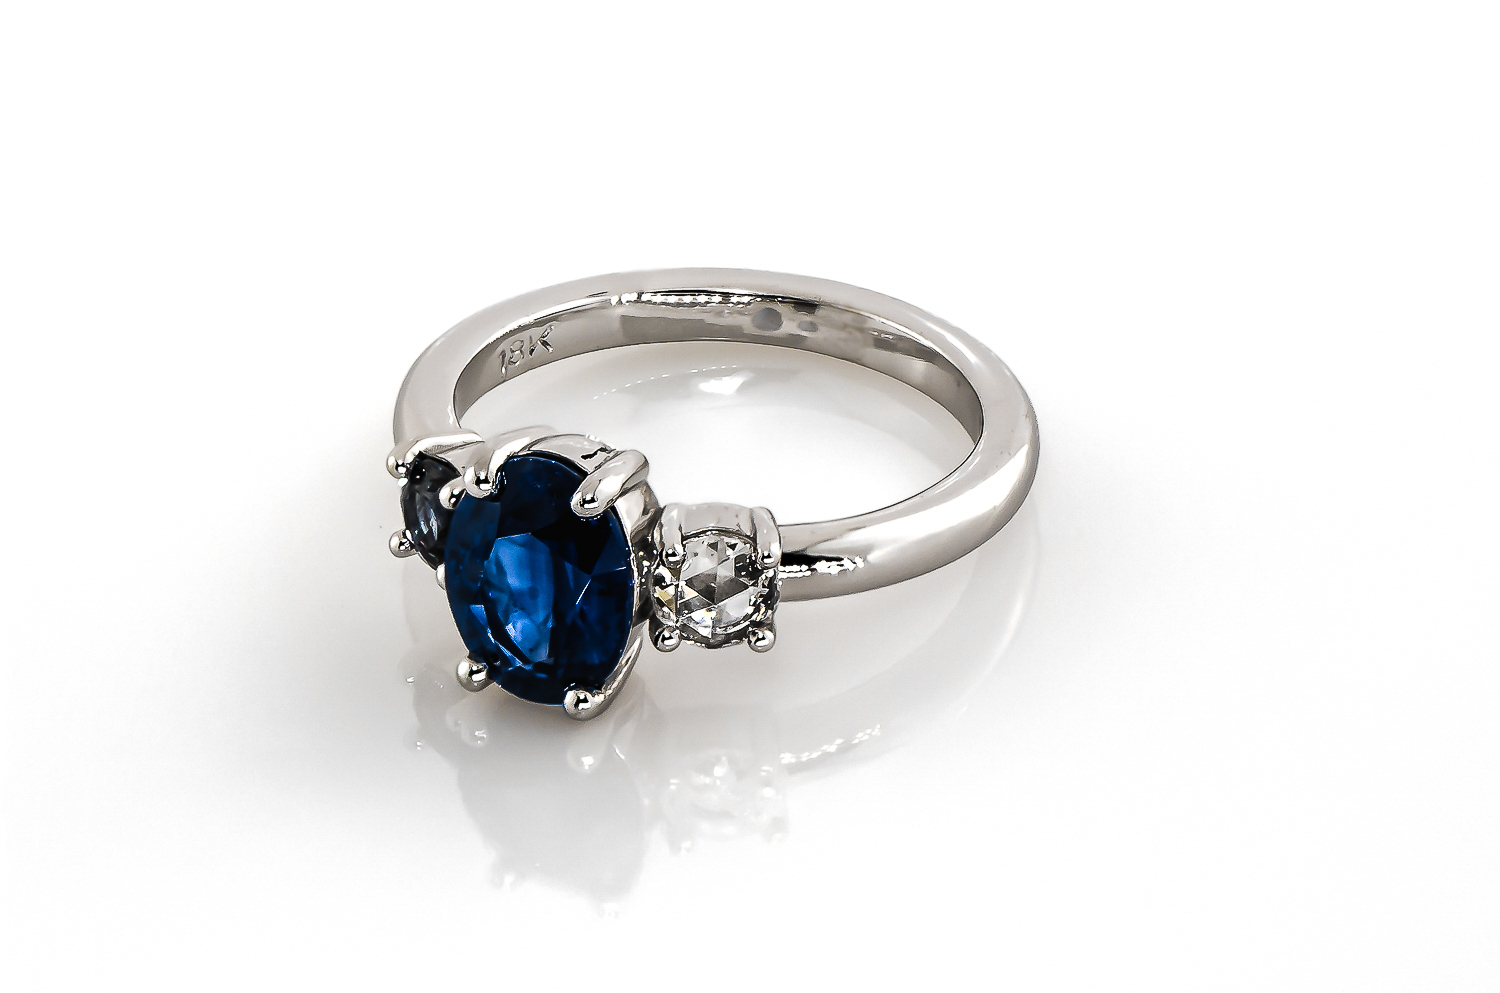 austin private jewelers lawson sapphire ring perspective.jpg